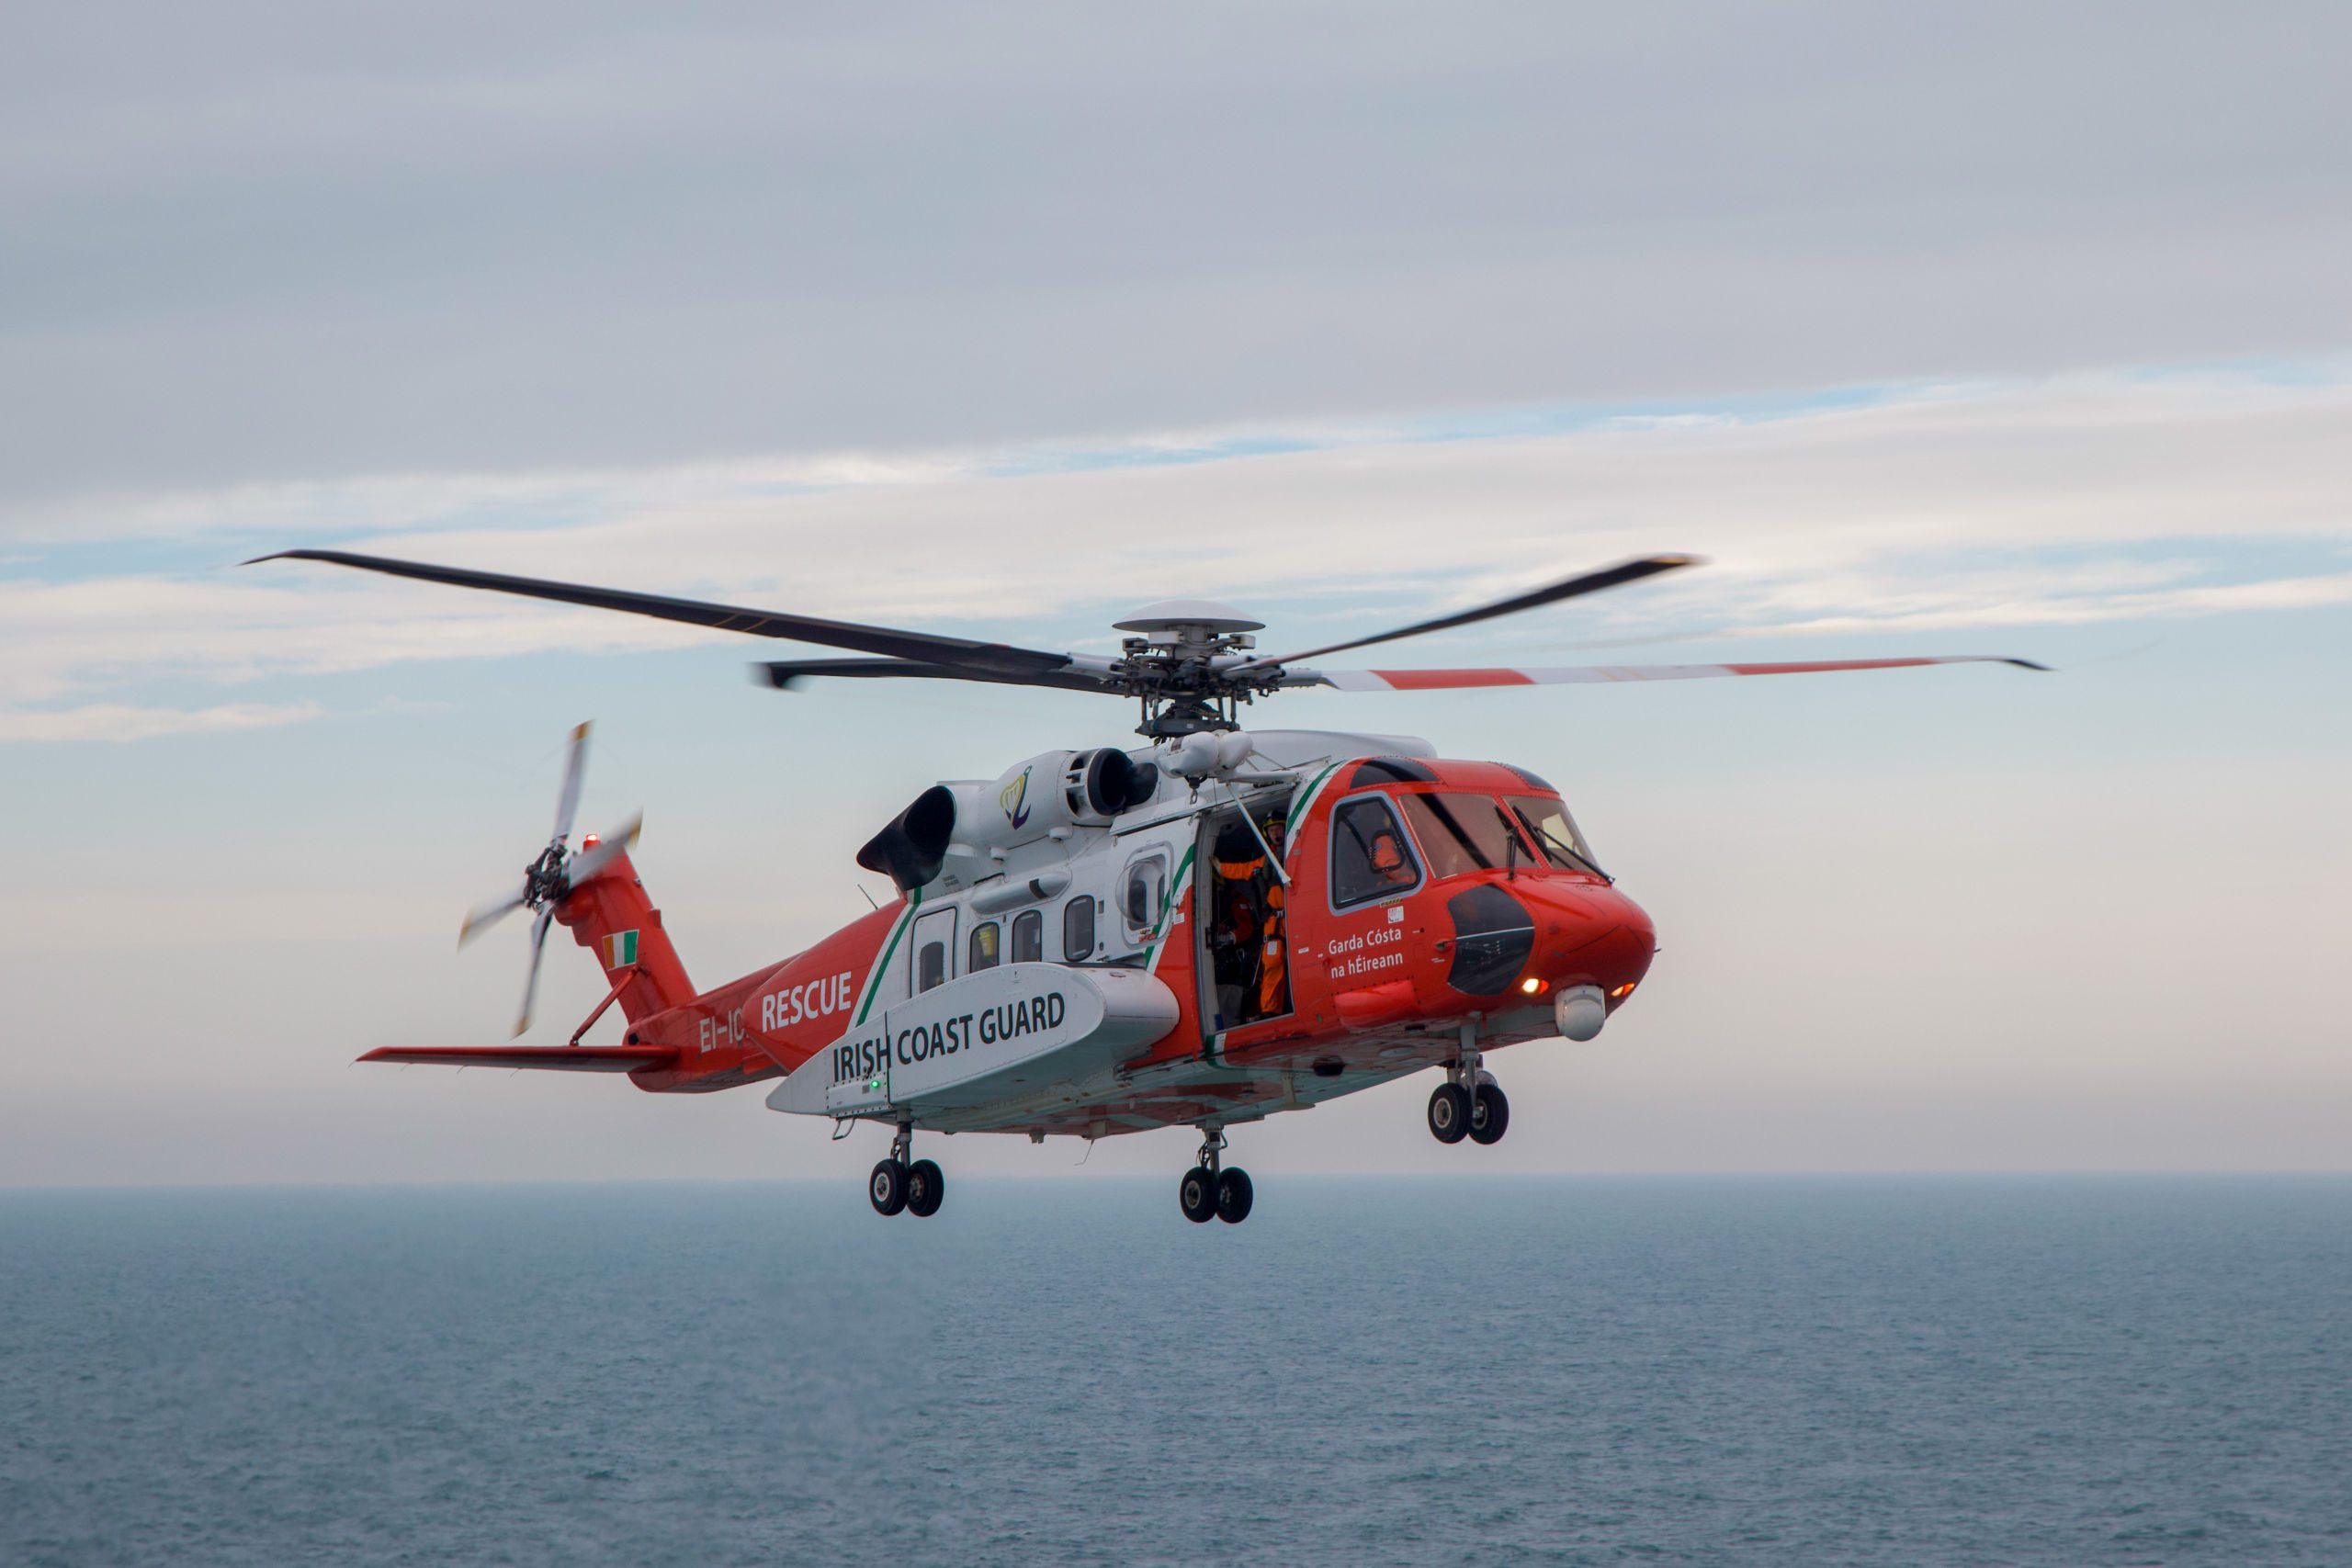 Technical diver dies off Isles of Scilly